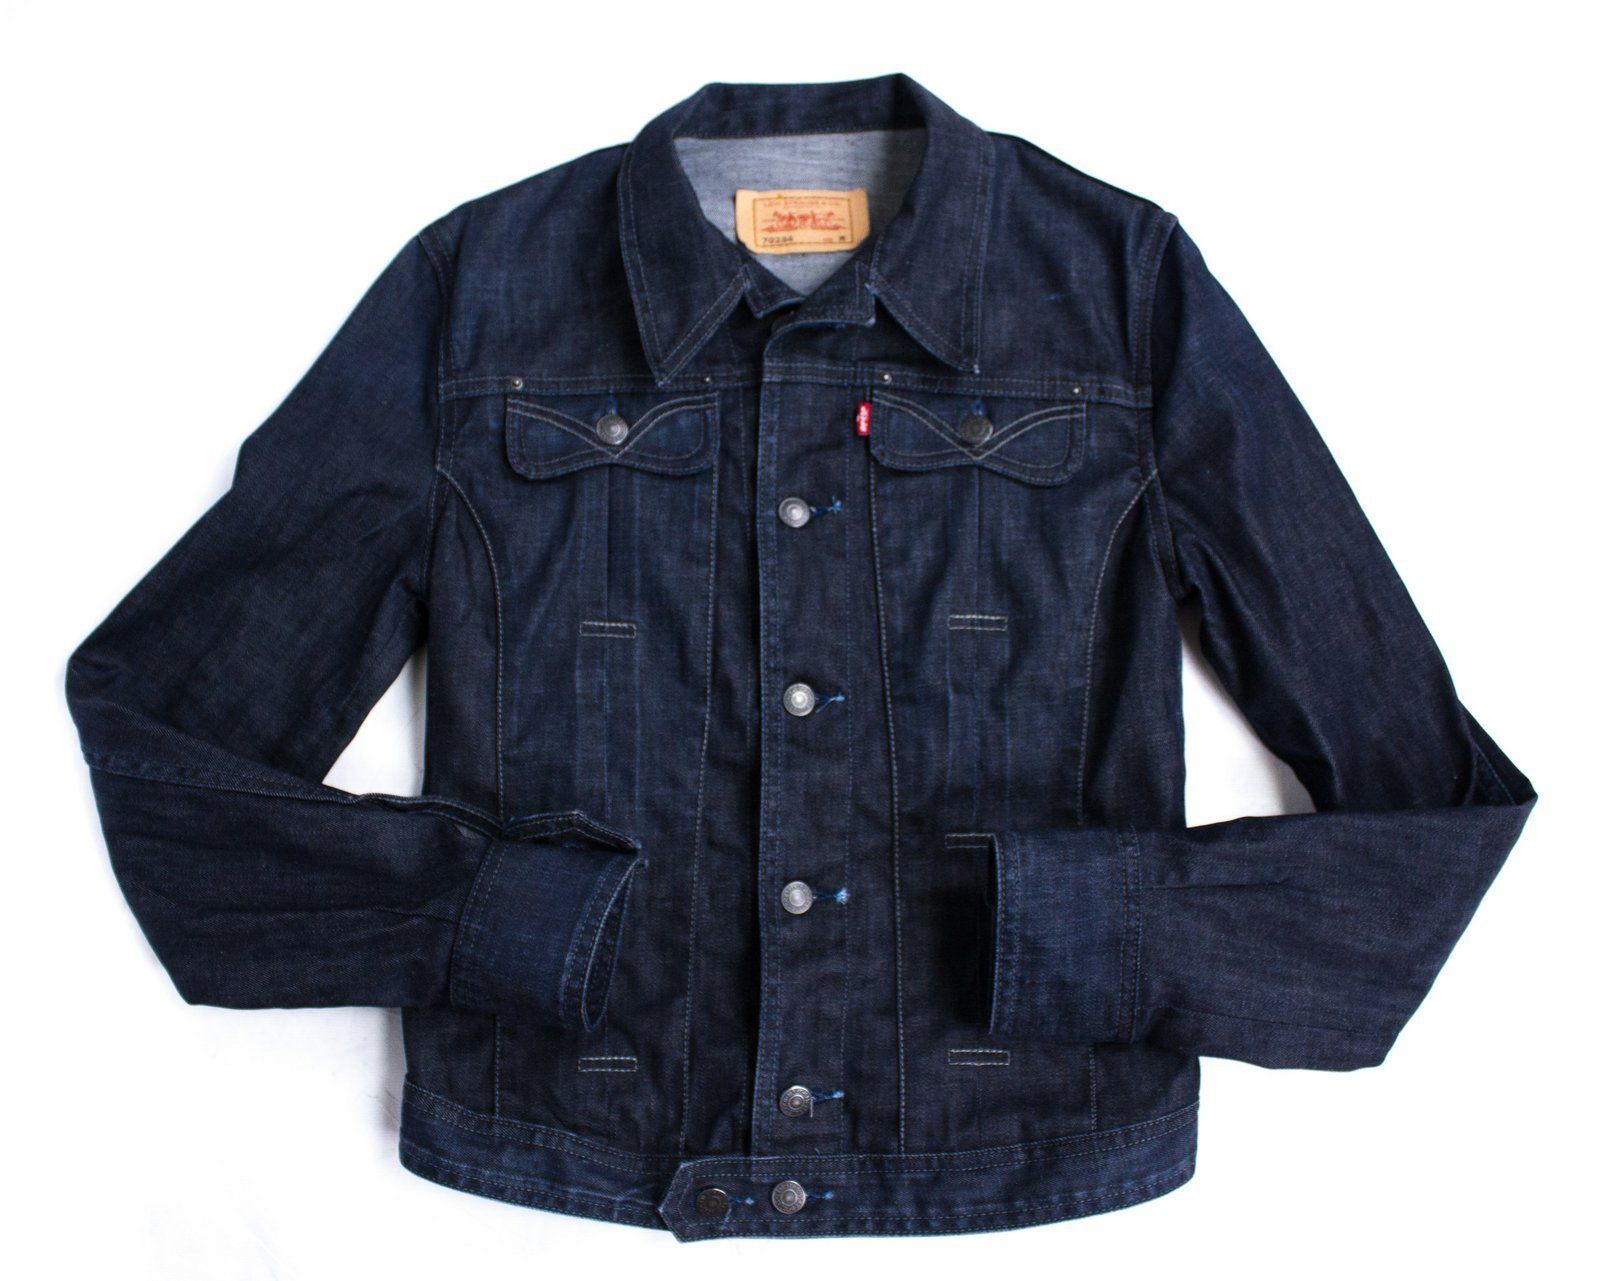 LEVI'S women's INDIGO BLUE DENIM Not Big E JACKET, SIZE M - secondfirst